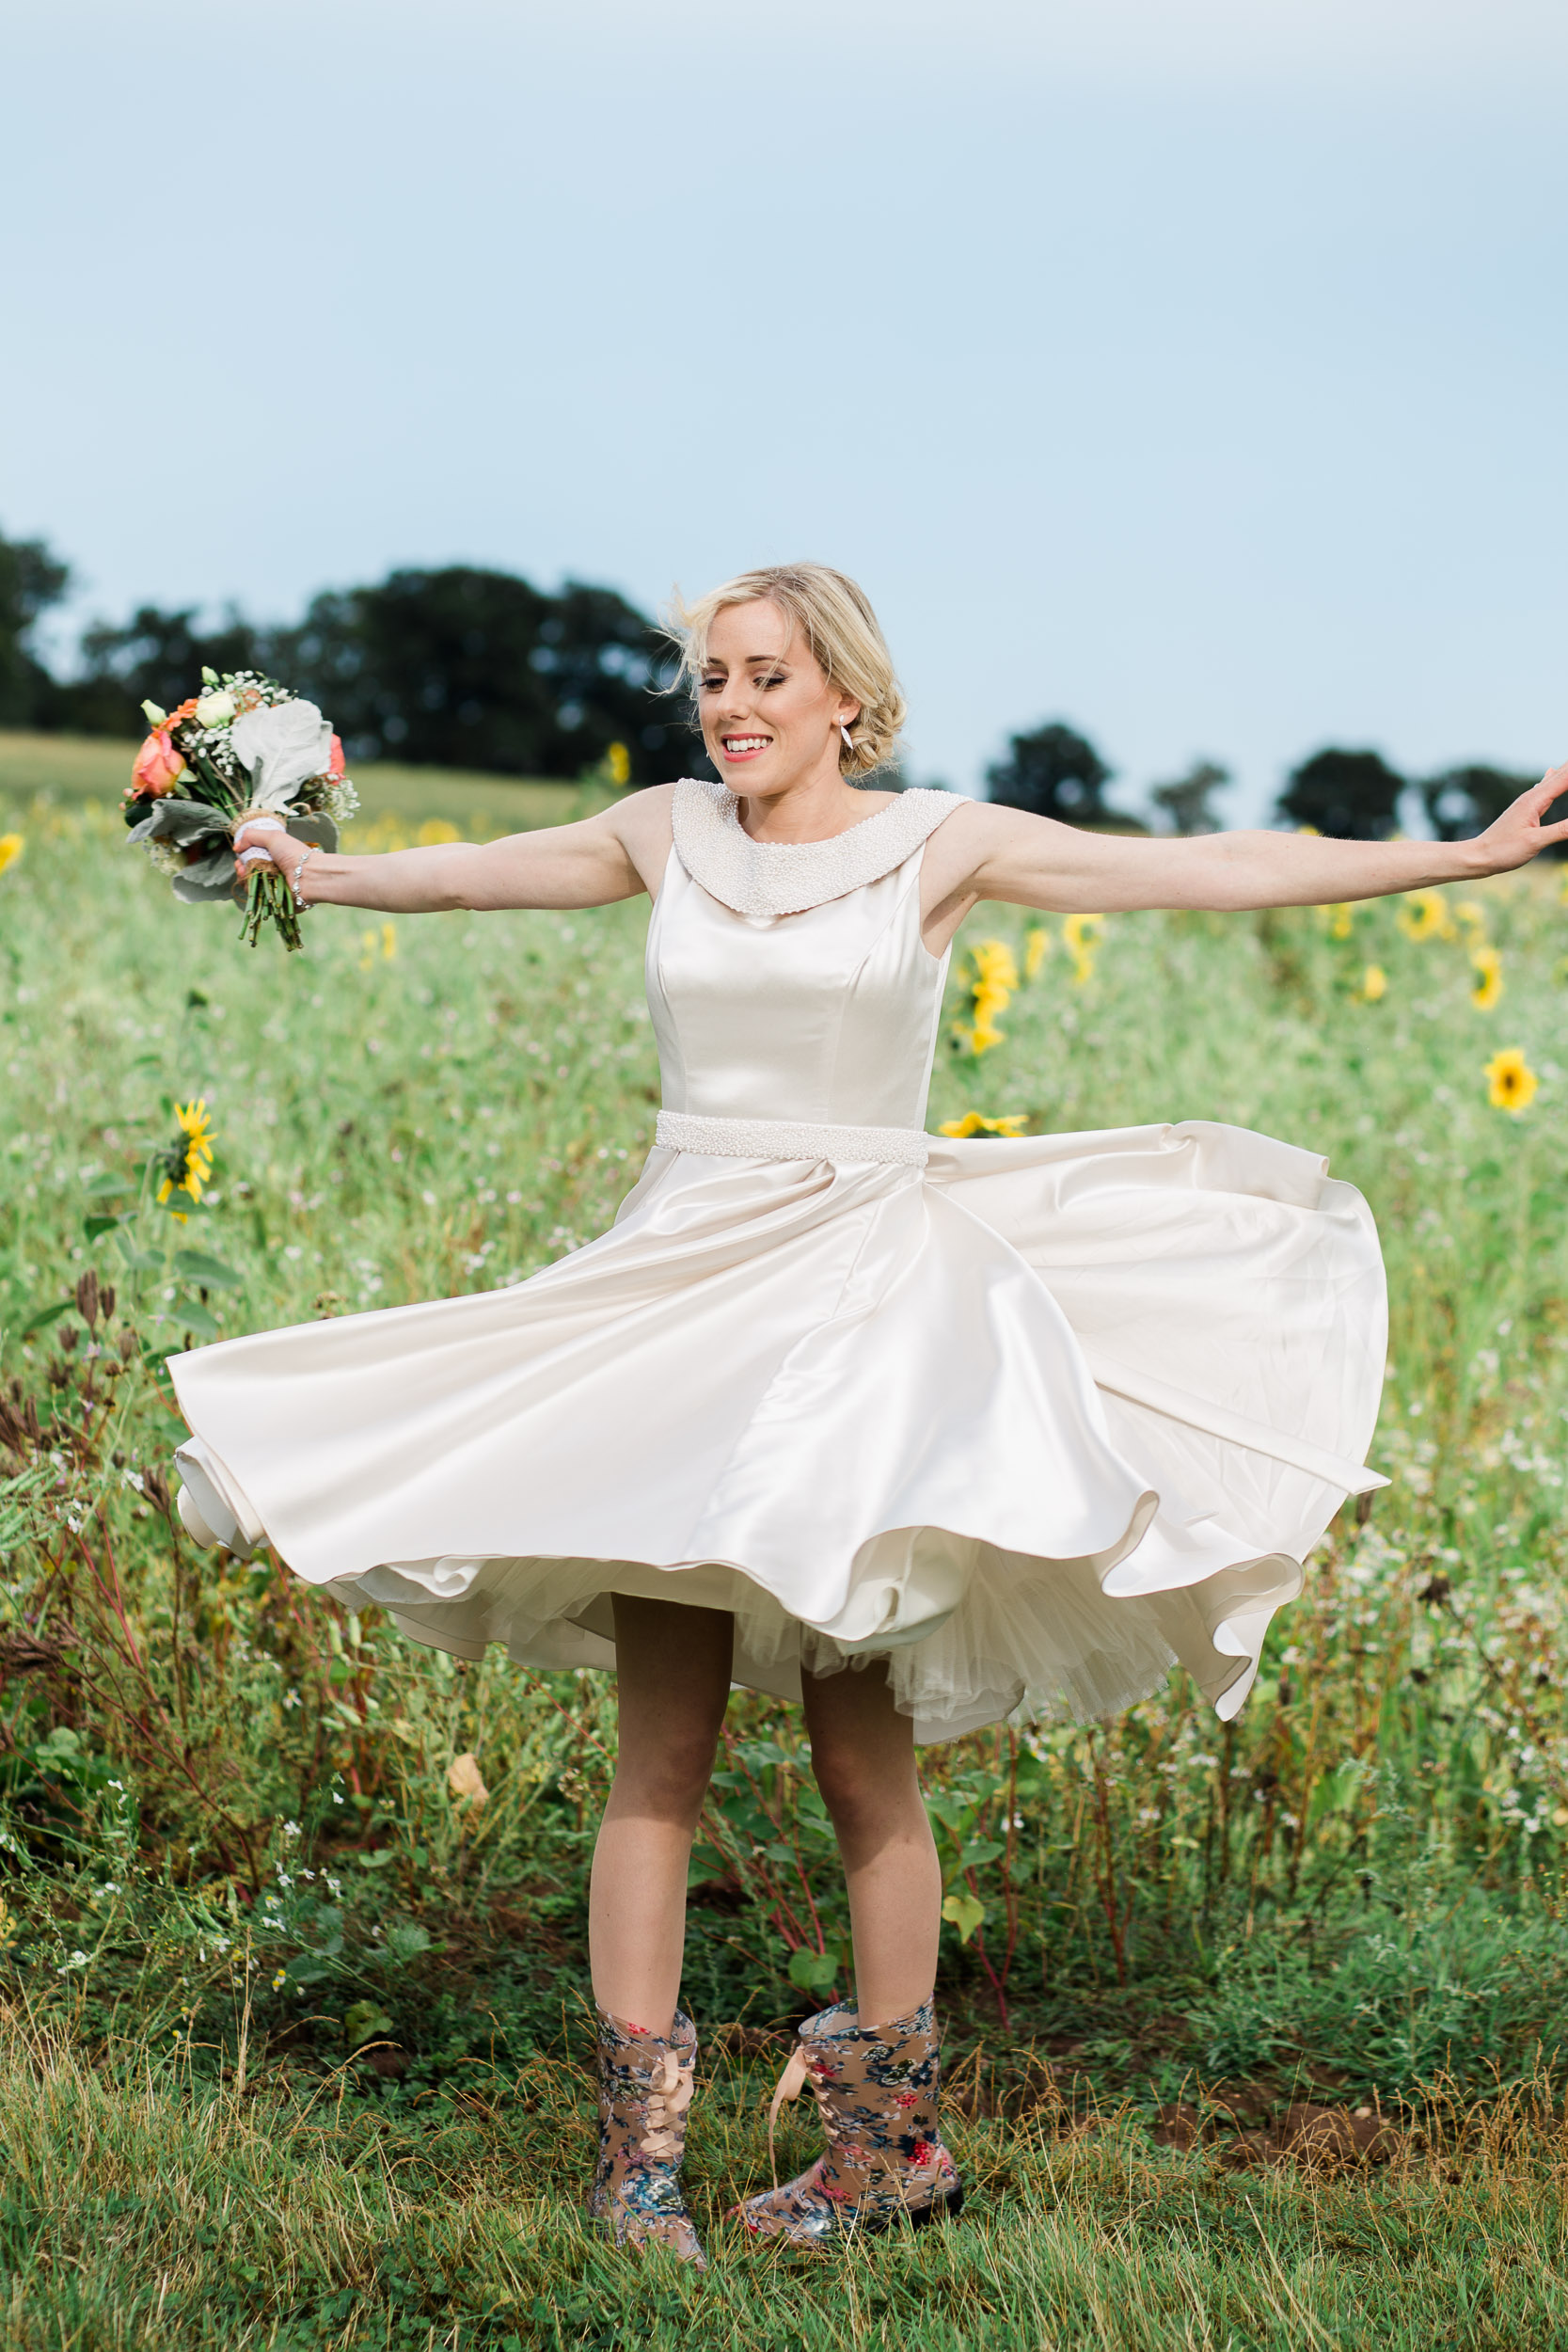 Swallows Nest Barn Chic & Rustic Wedding-129